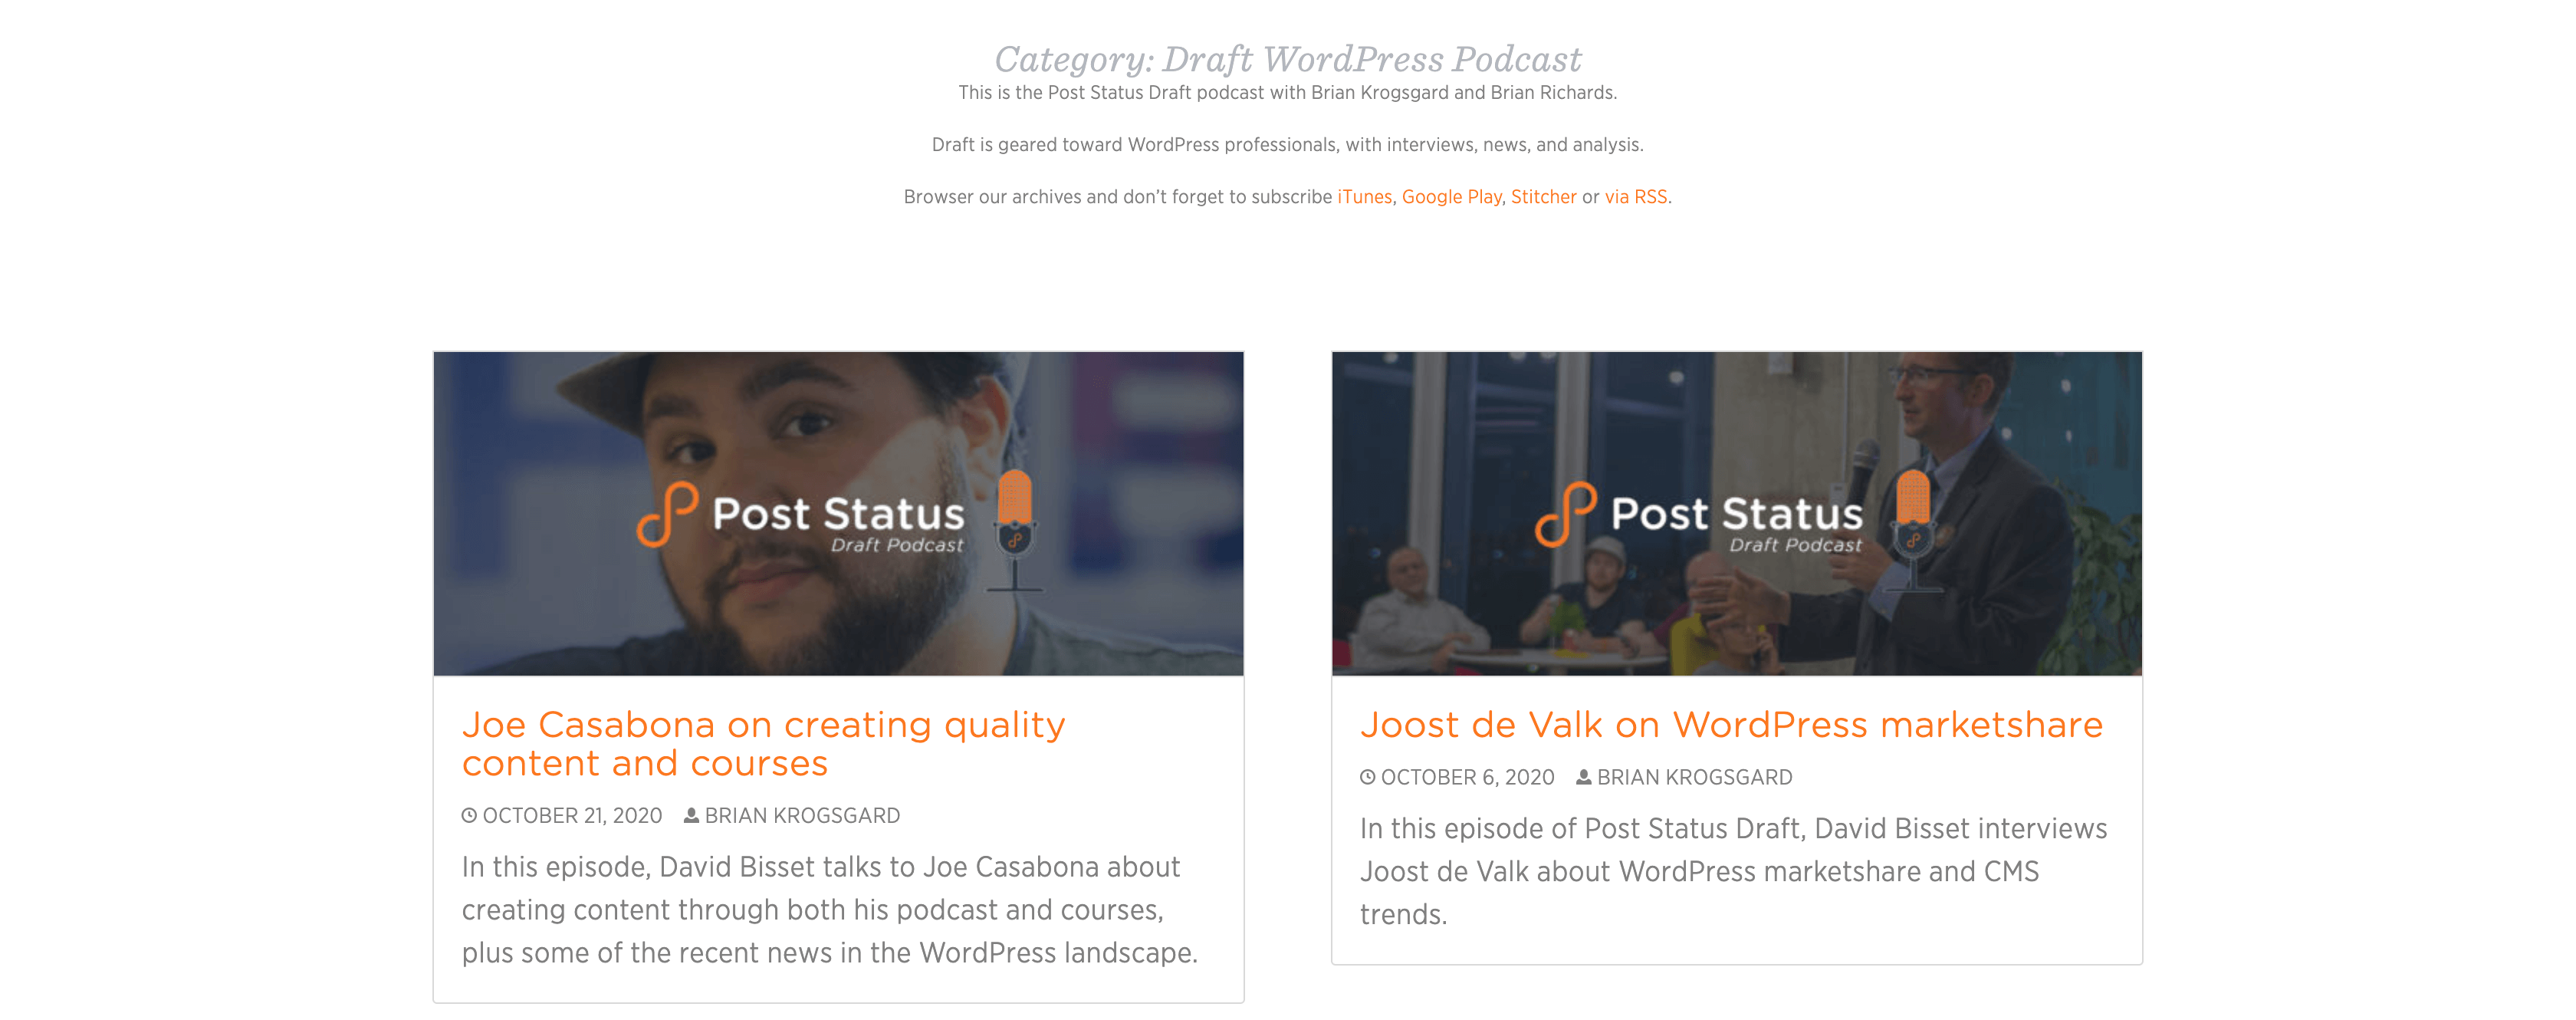 The Post Status home page.